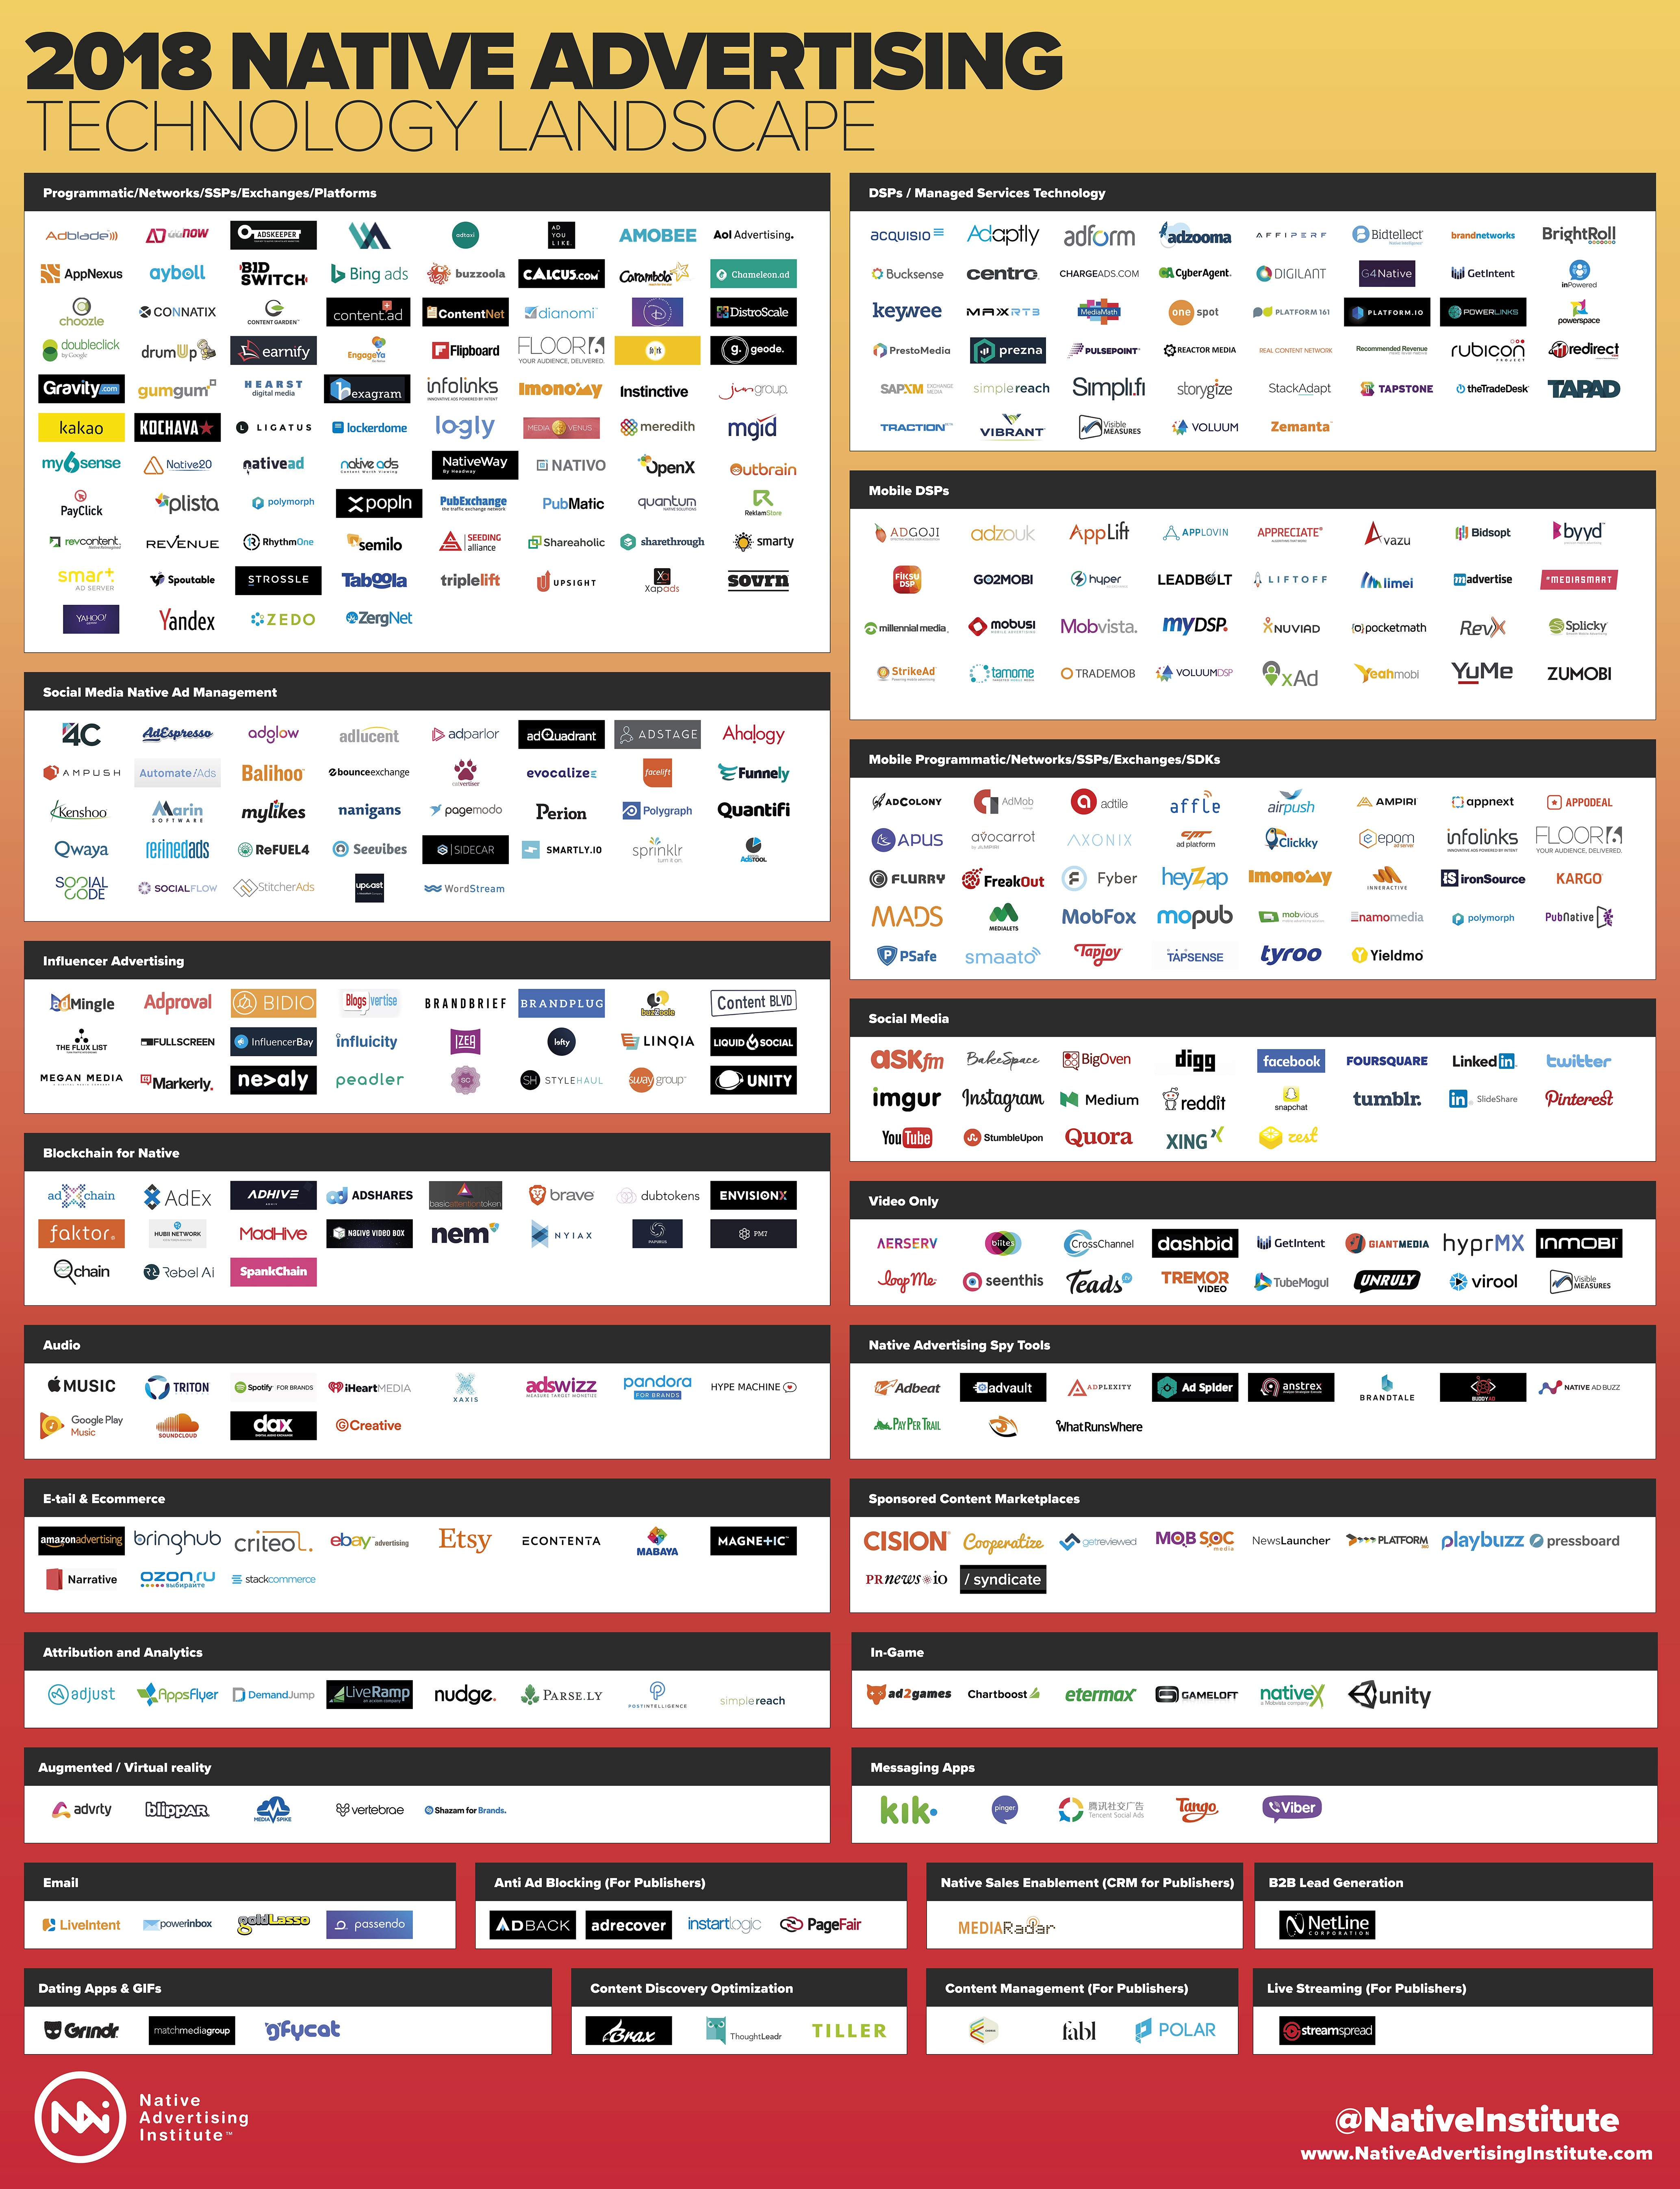 the 2018 native advertising technology landscape